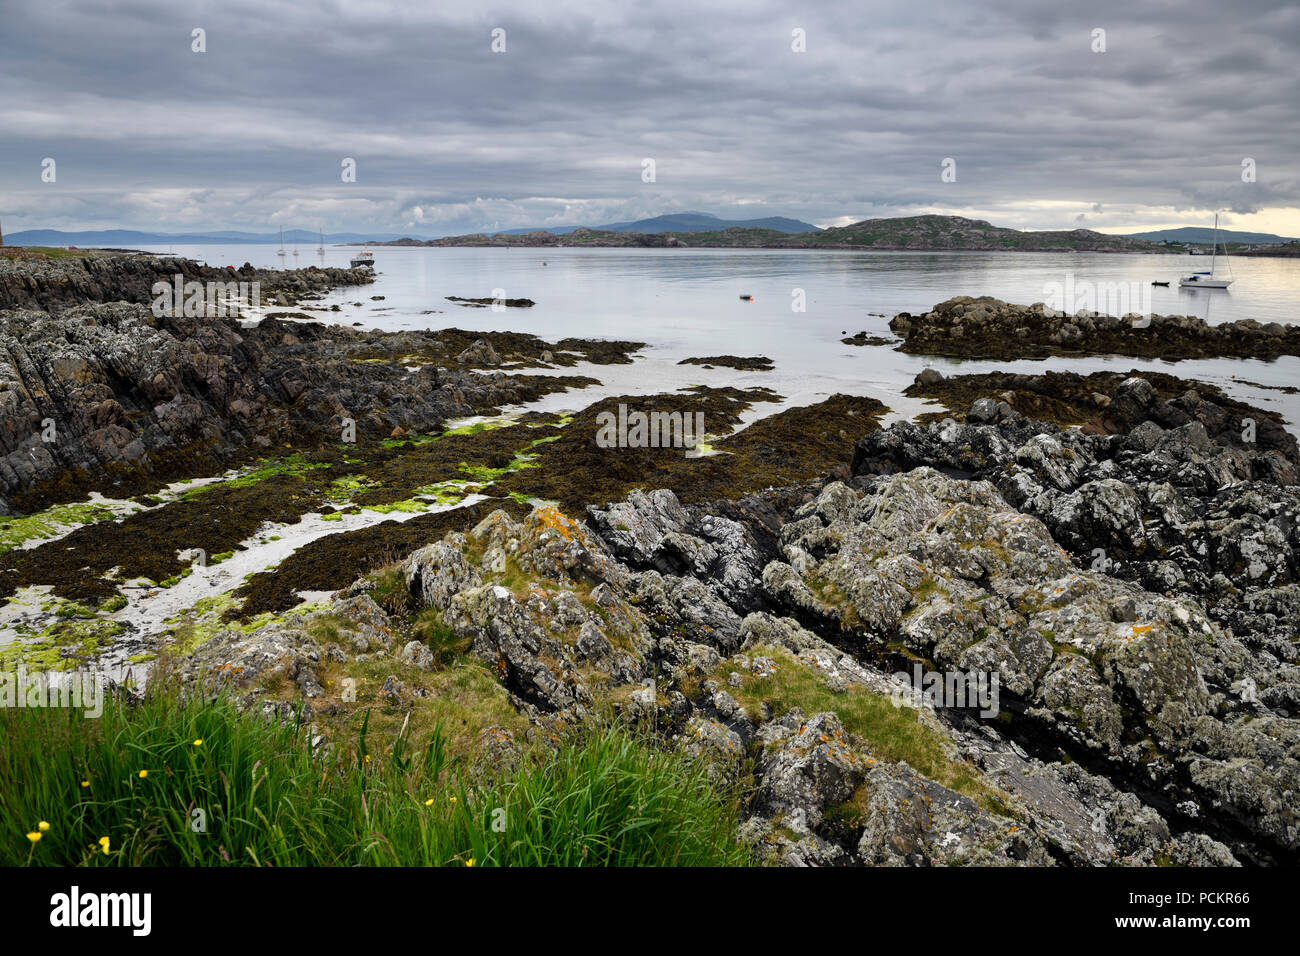 Sand beach and rocky shore under clouds on Isle of Iona with boats on Sound of Iona and Fionnphort Isle of Mull mountains Scotland UK - Stock Image